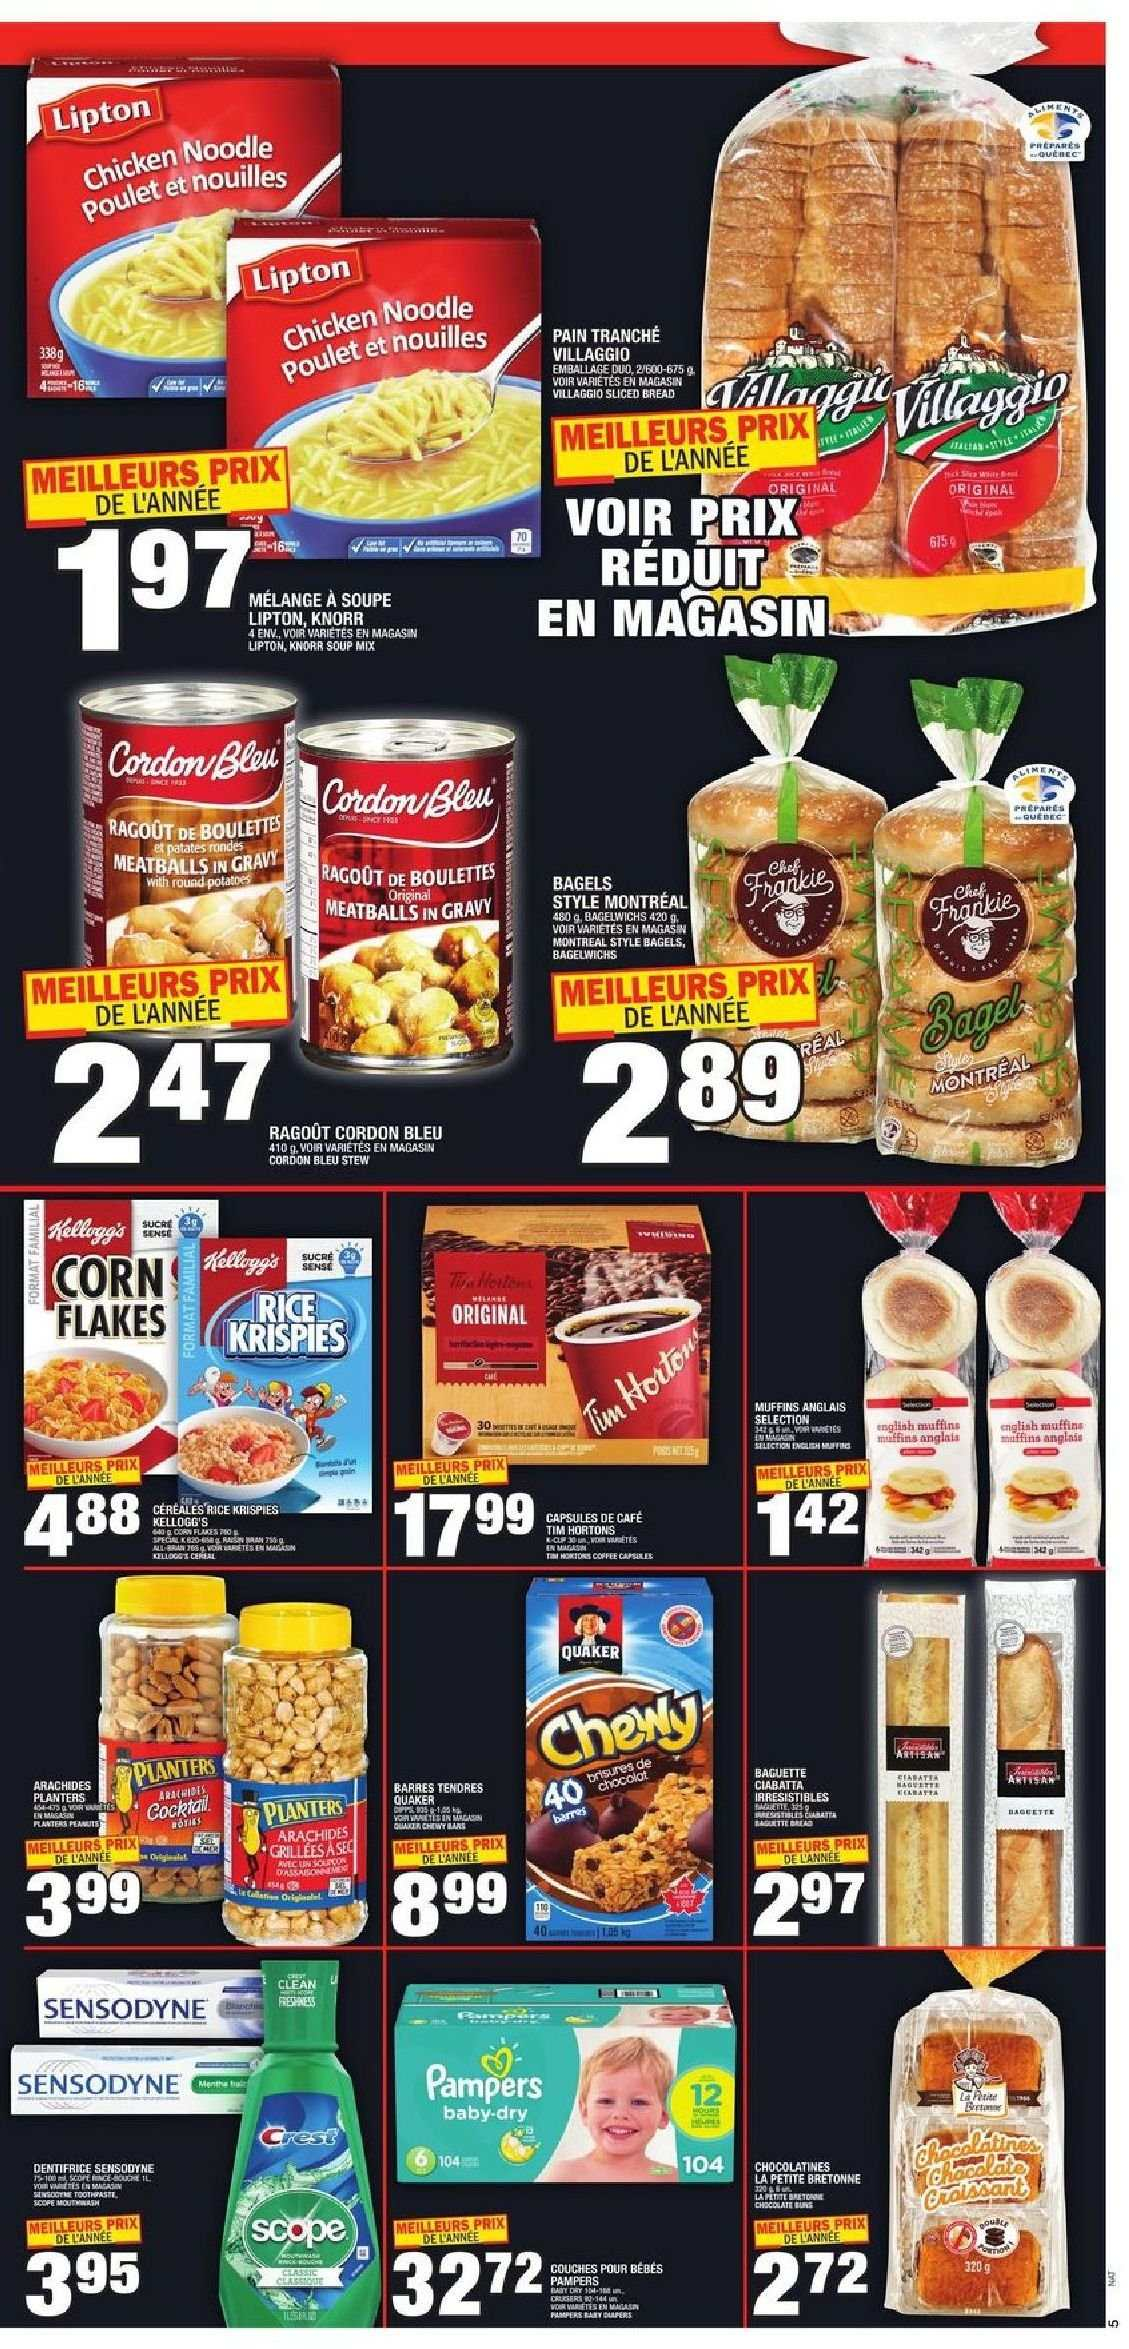 Super C Flyer - November 15, 2018 - November 21, 2018 - Sales products - bagels, bread, capsules, corn, muffins, rice, chicken, noodle, meatballs, soup mix, soup, sensodyne, corn flakes, lipton, knorr, flakes, cafe, cordon bleu, dentifrice, soupe, nouilles, plante. Page 5.